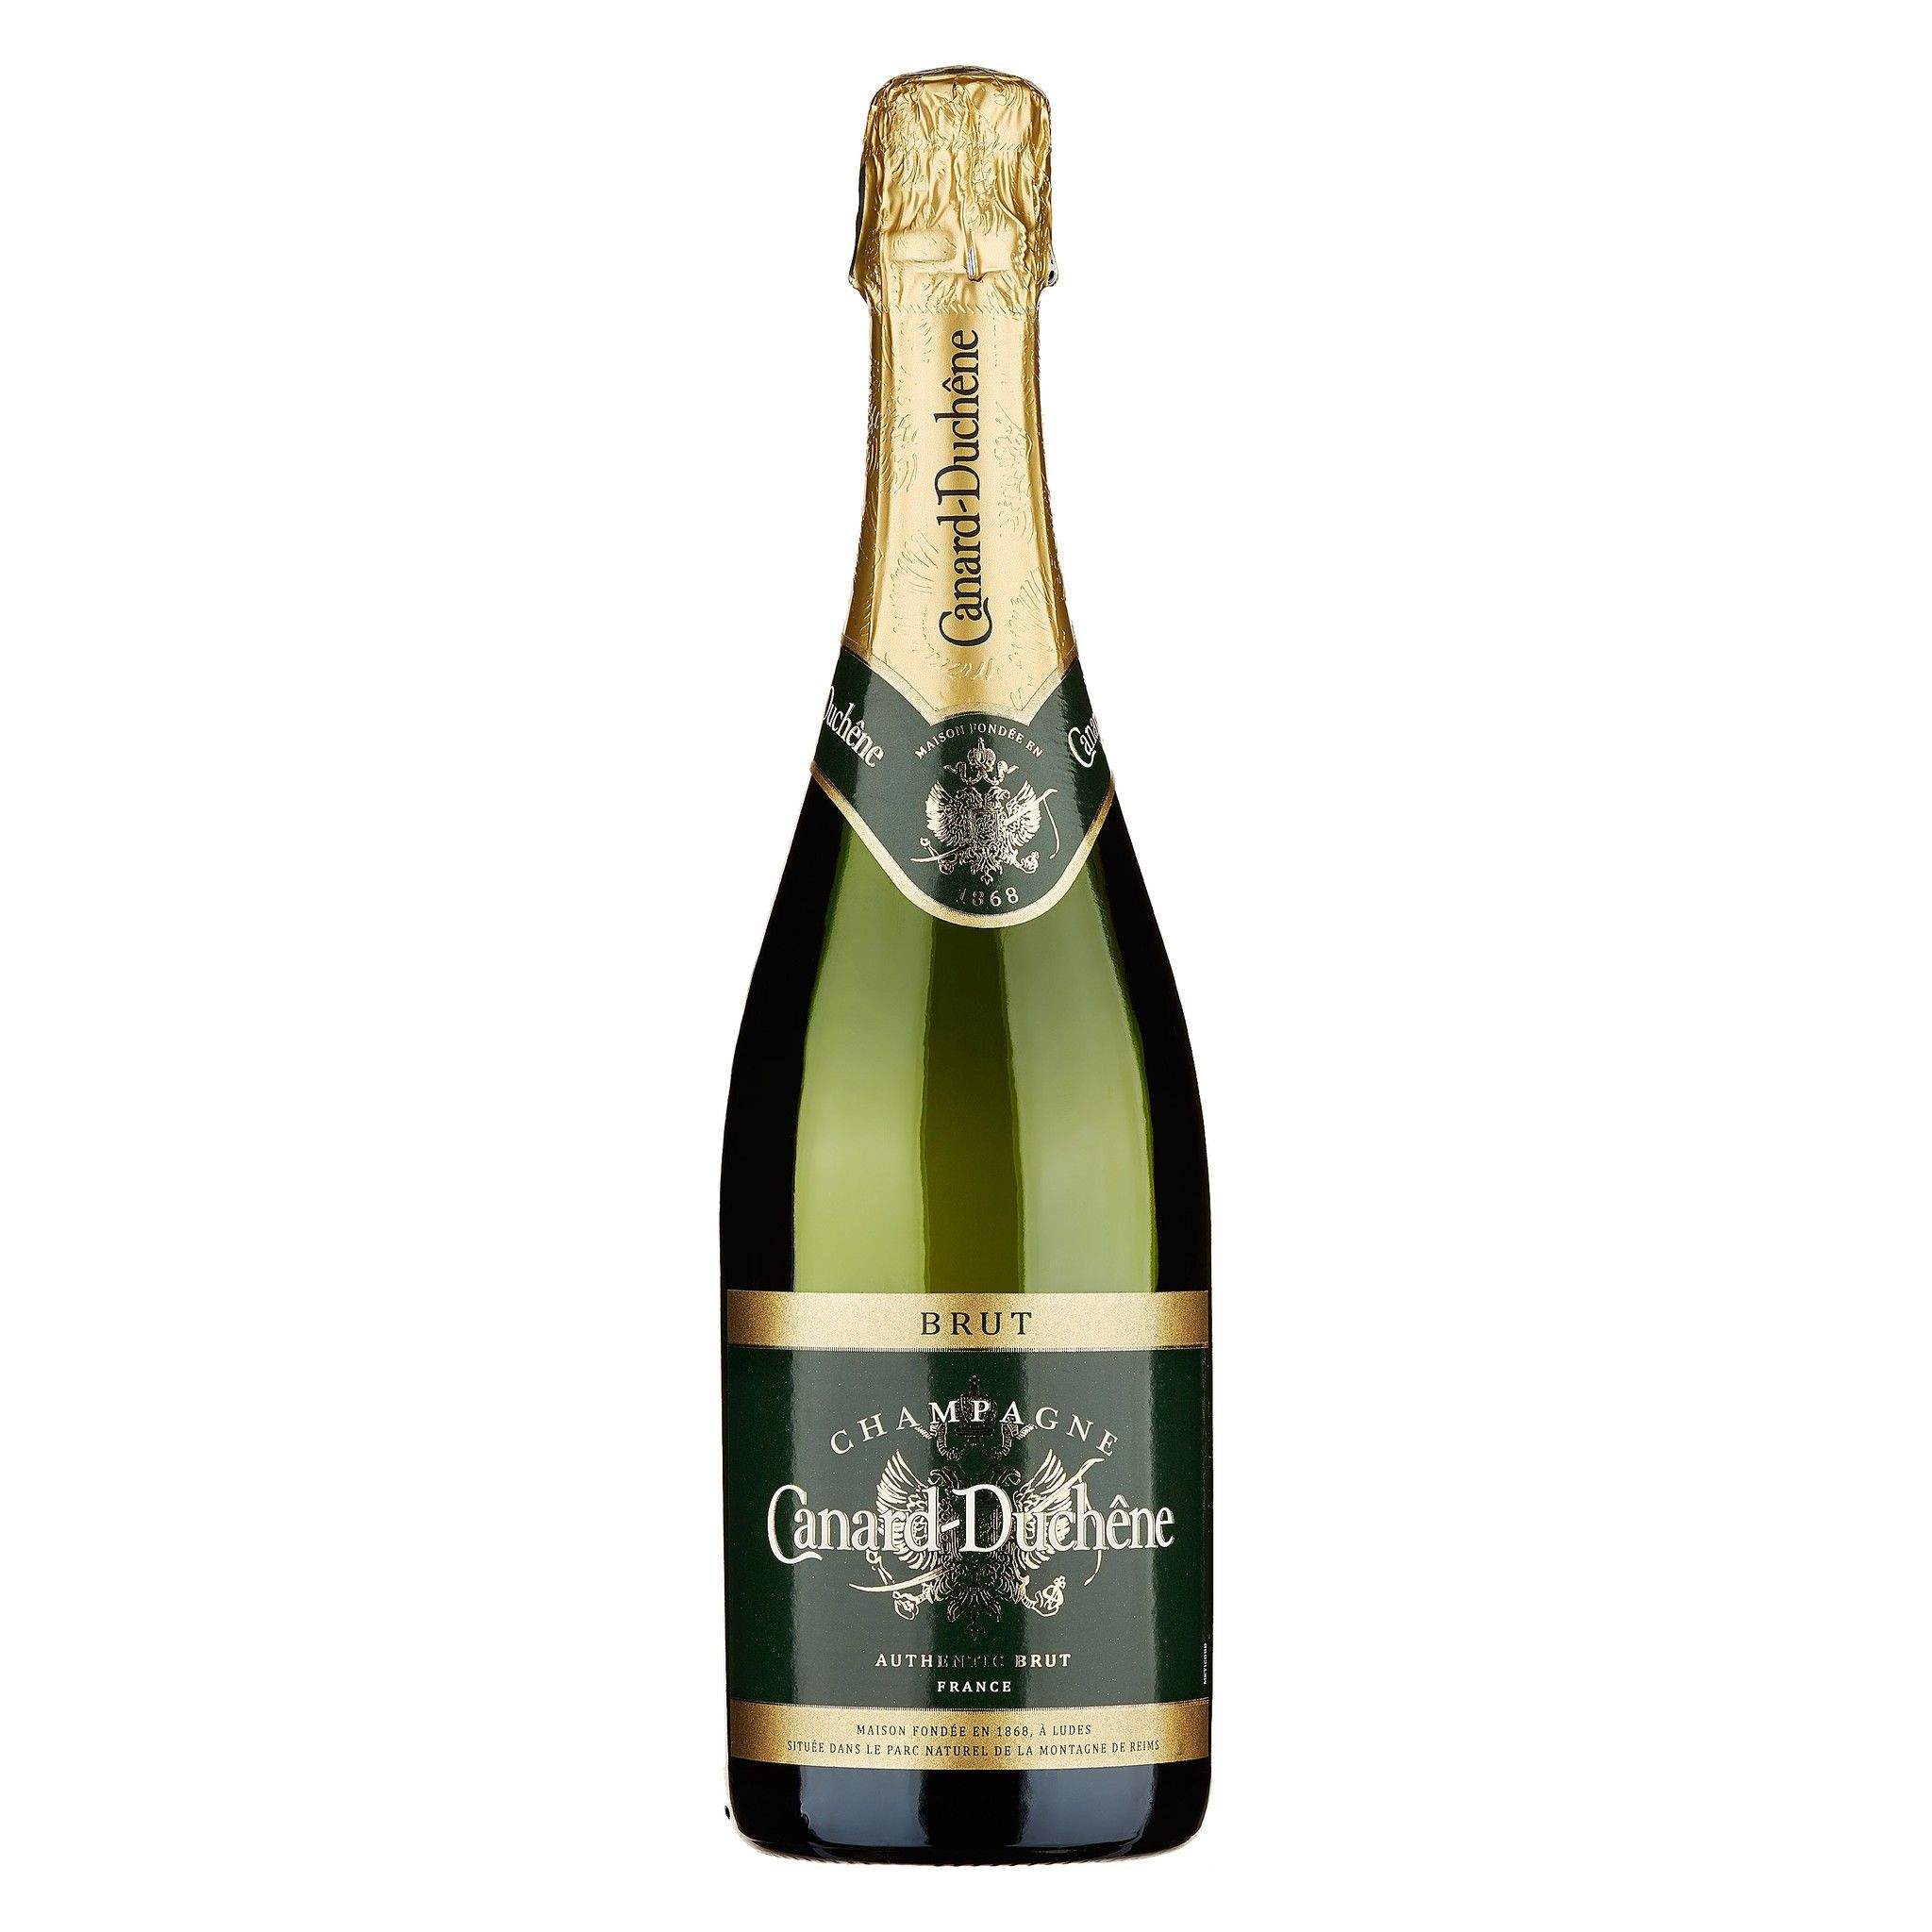 "CANARD DUCHENE - CHAMPAGNE BRUT ""AUTHENTIC"" LT 0,75 - BOTTIGLIE 6"